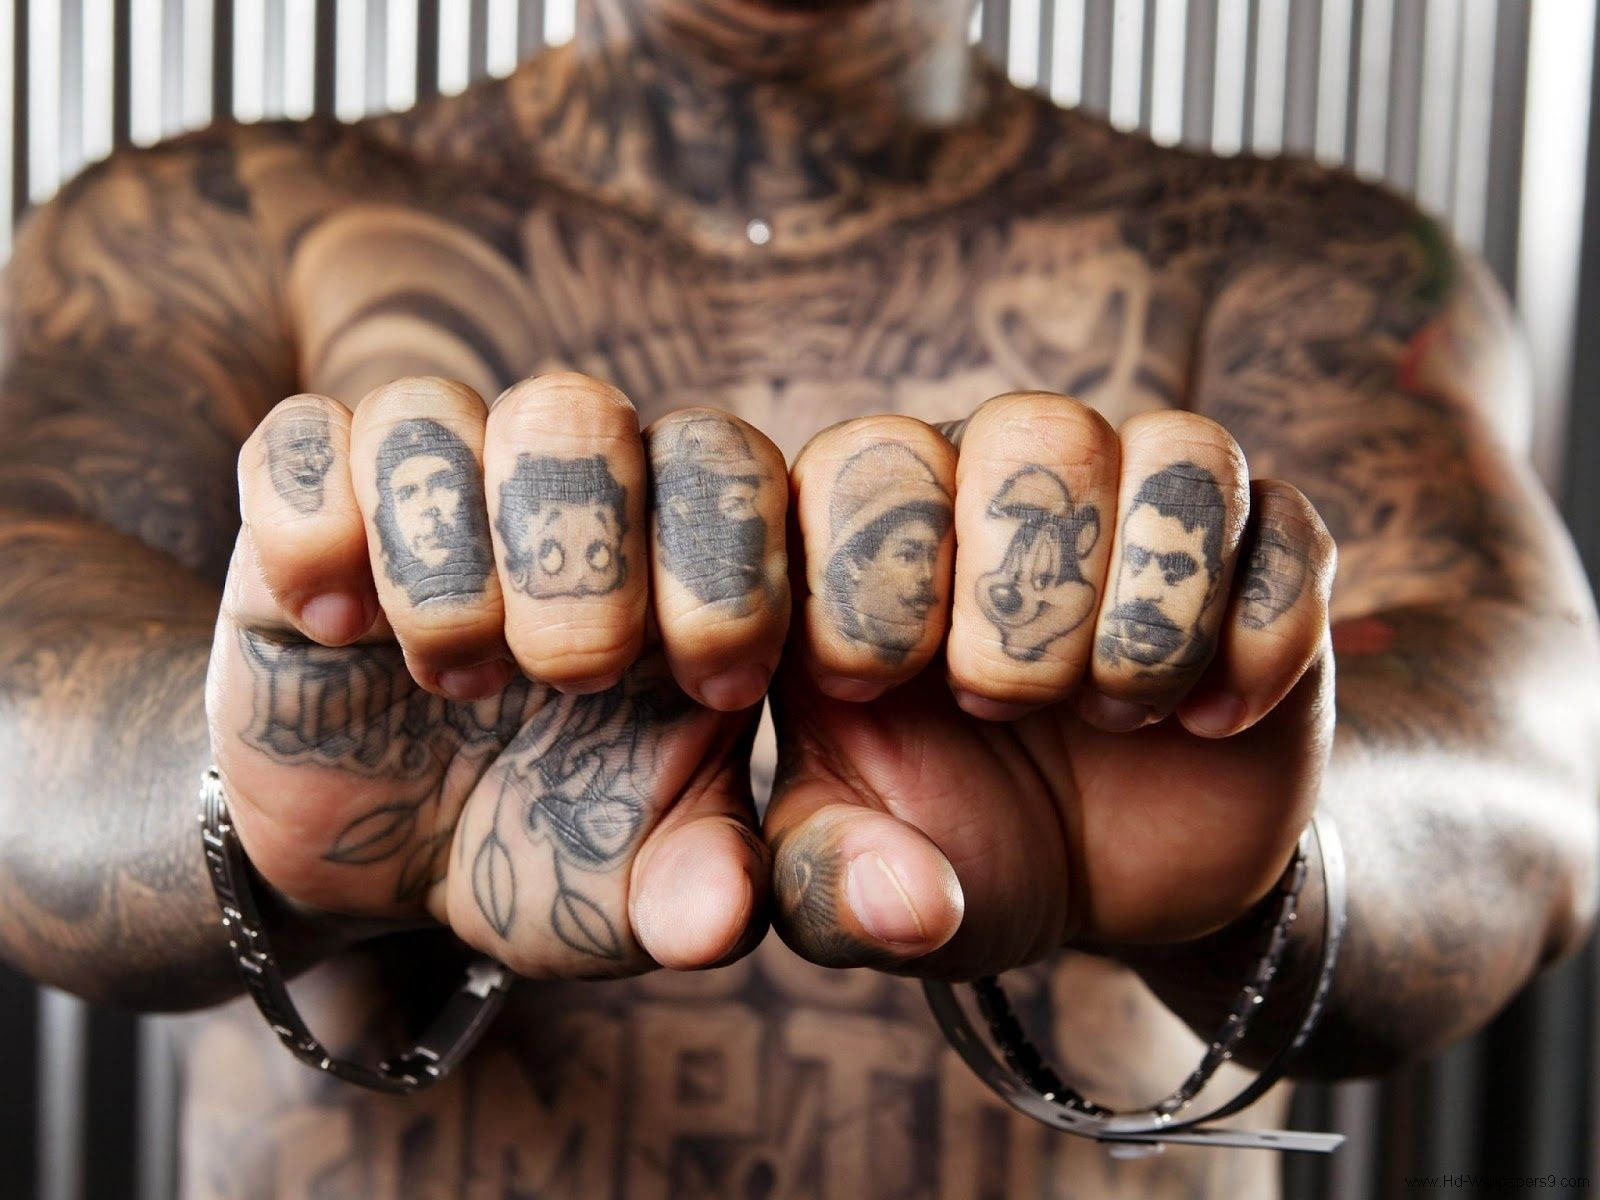 Cool Tattoo Wallpapers Top Free Cool Tattoo Backgrounds Wallpaperaccess Free tattoo wallpapers and tattoo backgrounds for your computer desktop. cool tattoo wallpapers top free cool